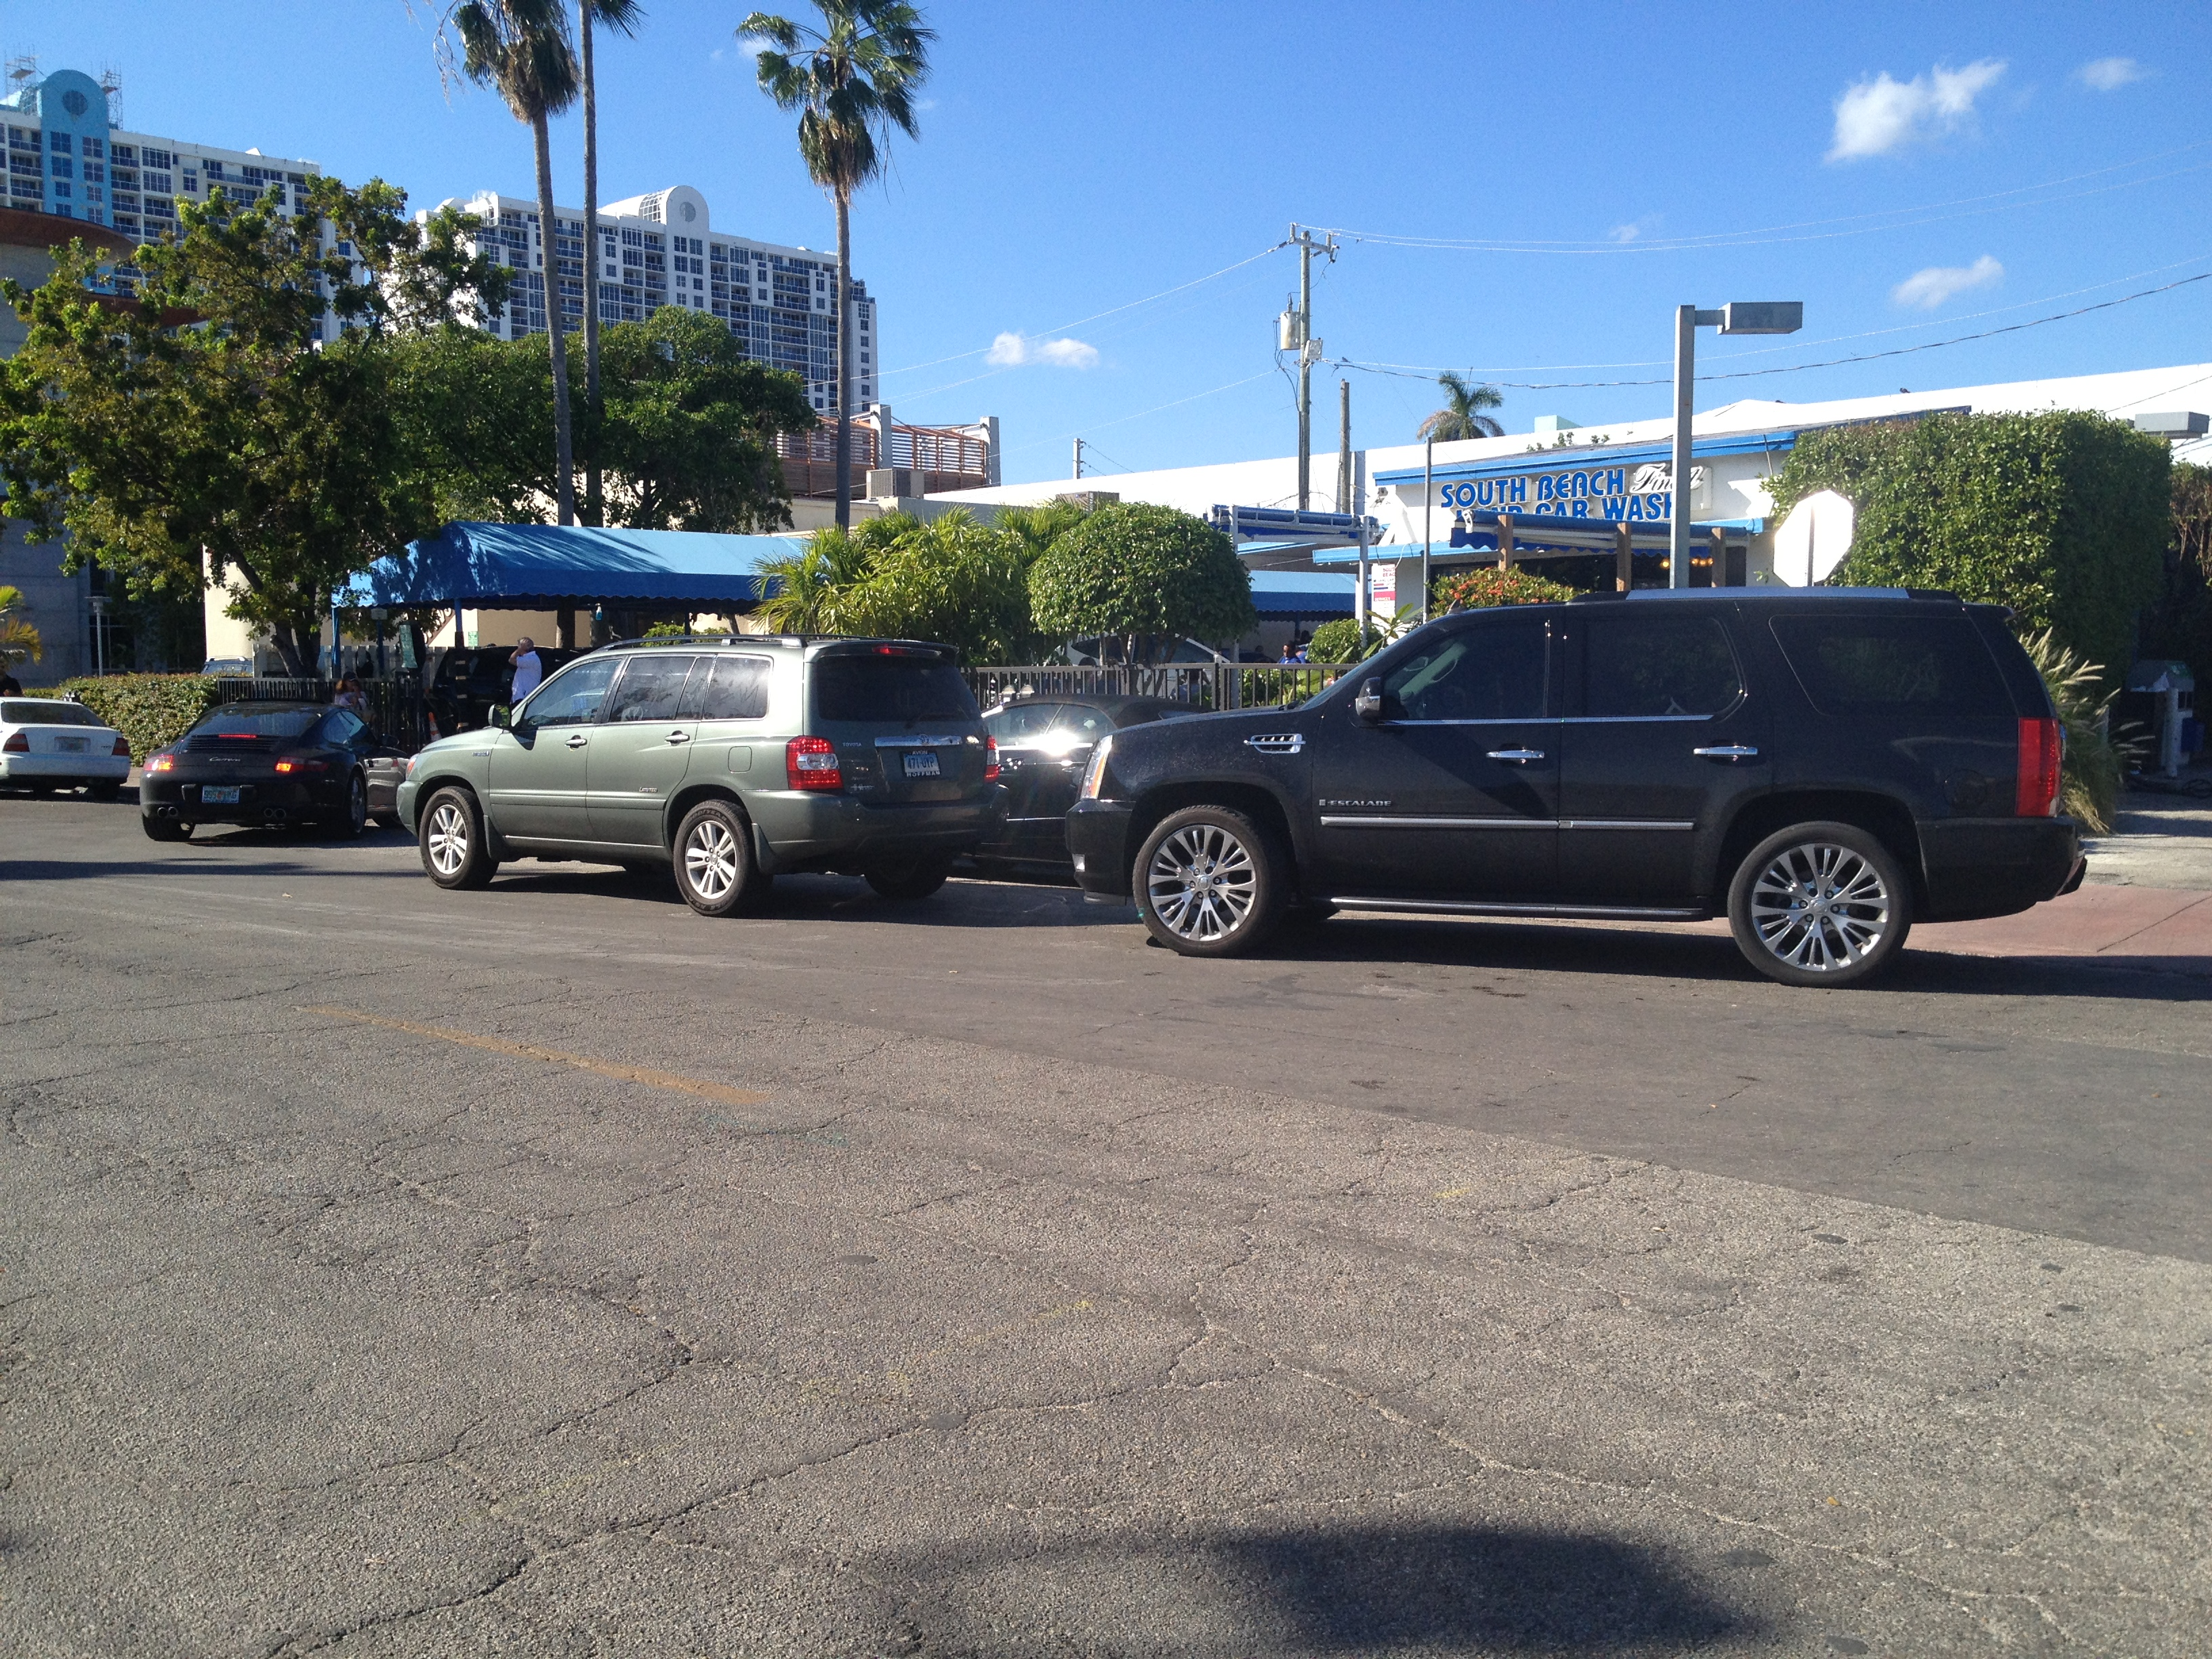 SOUTH BEACH FINEST HAND CAR WASH AND WIDOW TINTING Photo